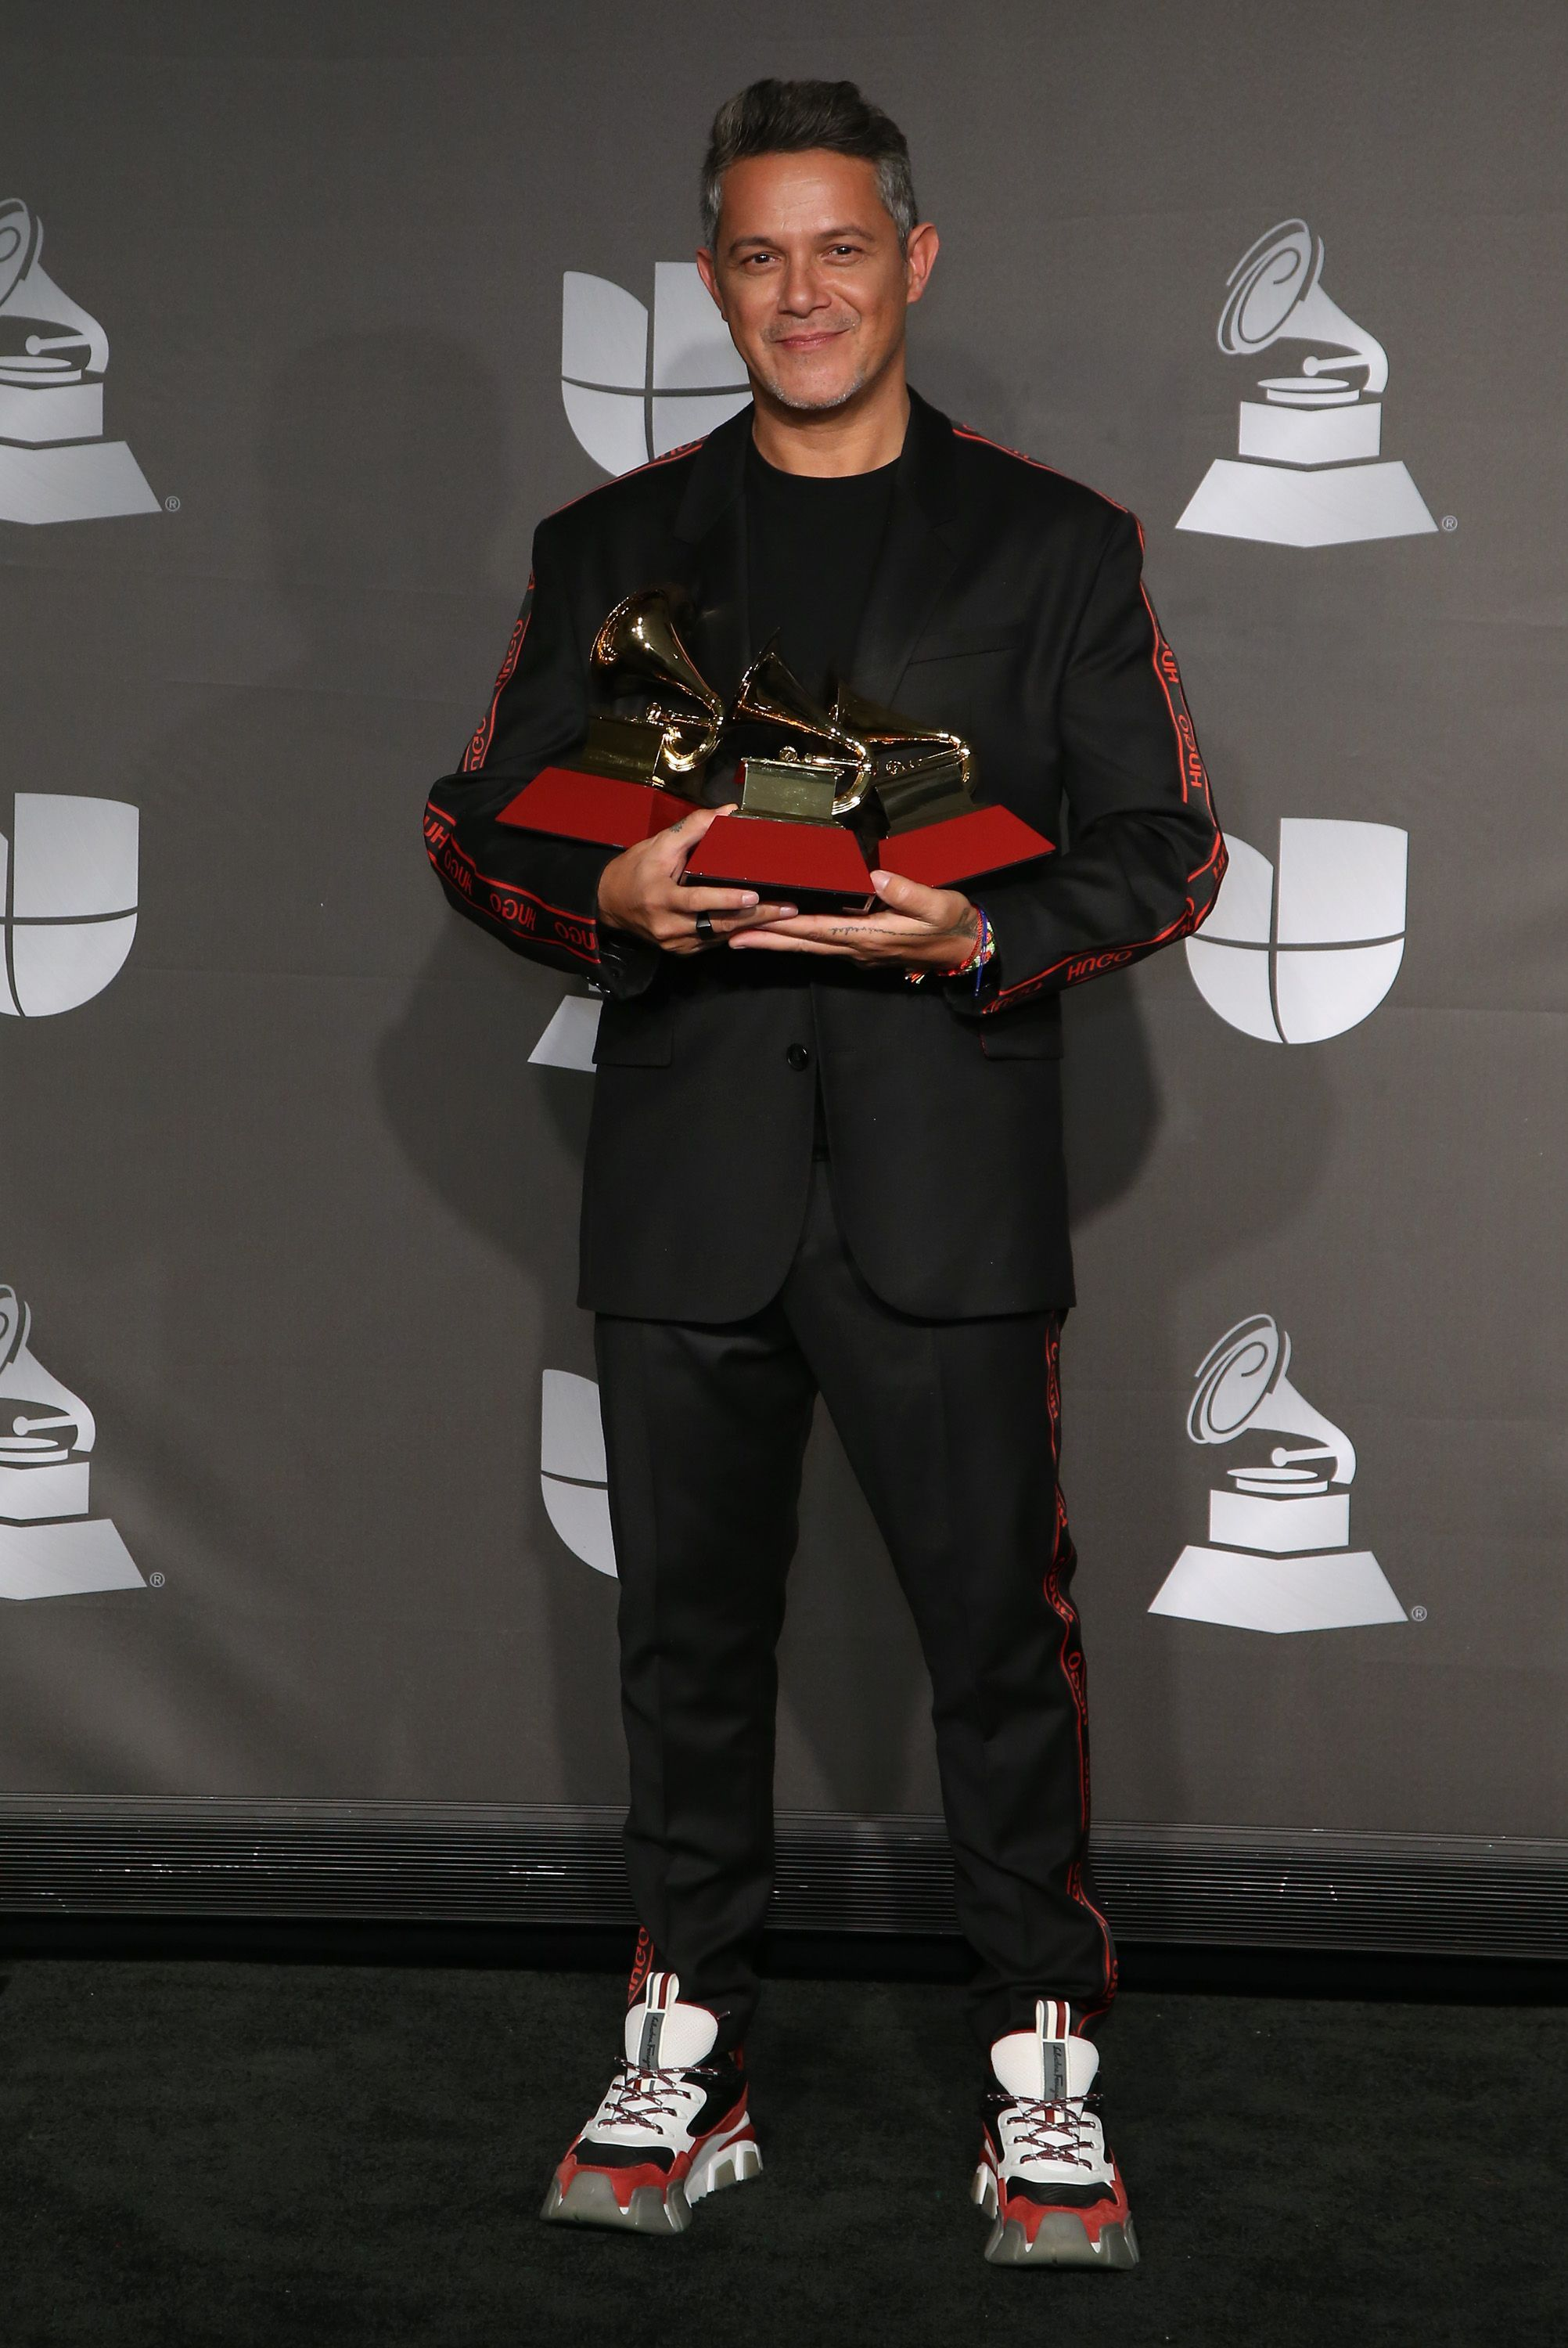 Latin Grammy Awards 2019 The Best Moments and Big Winners